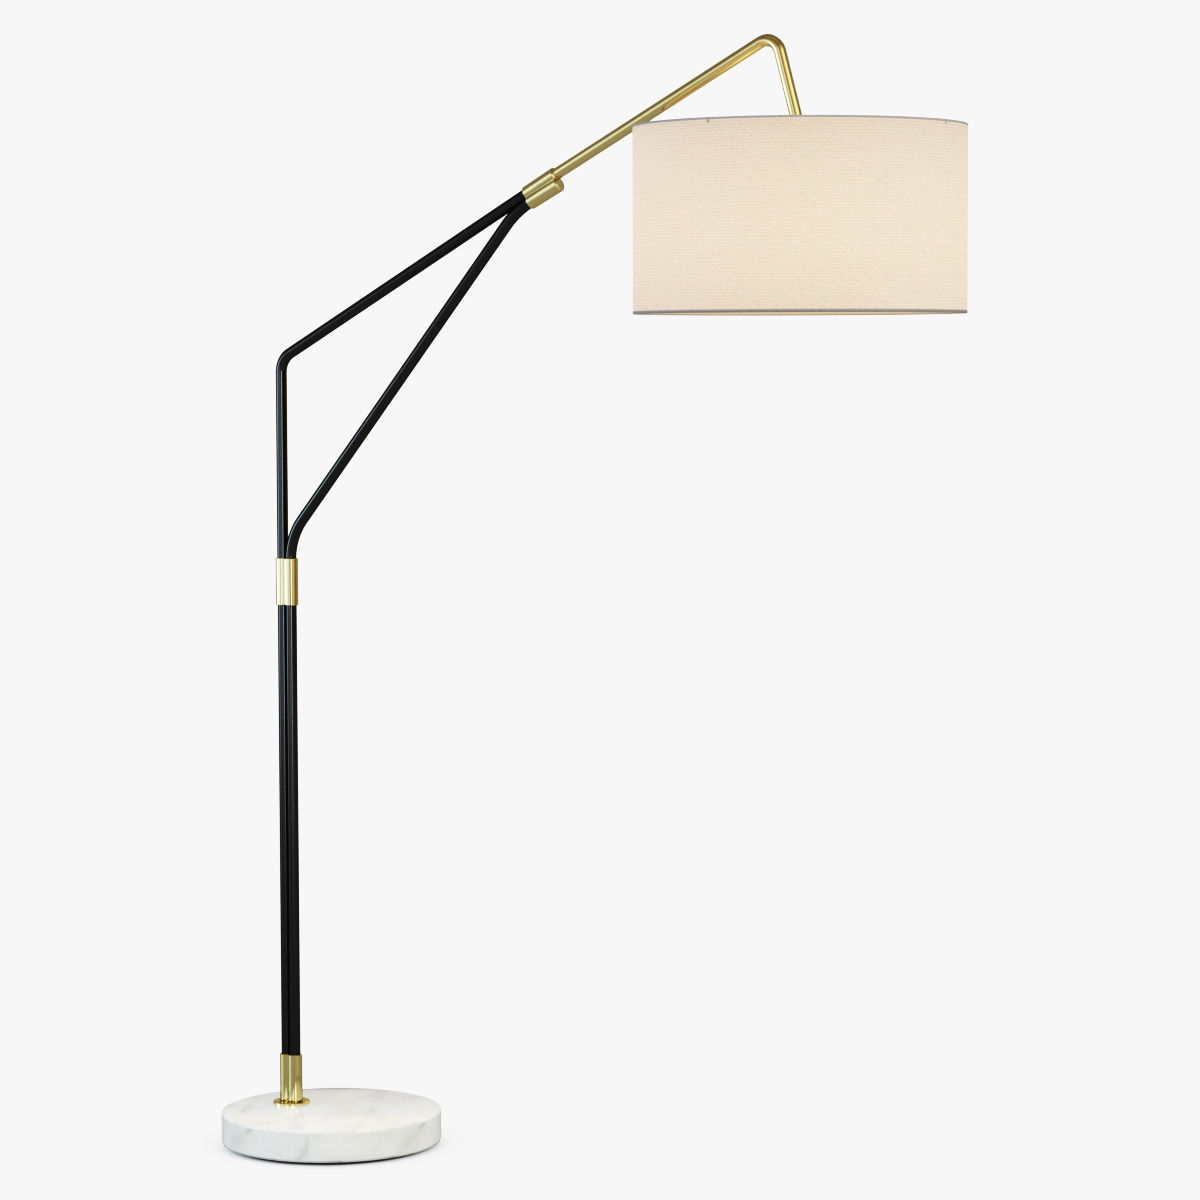 couch hang replacement floors amazon lamp lamps target brass that sofa light over overarching amazing shade behind floor shades dining lighting affordable arc table mission